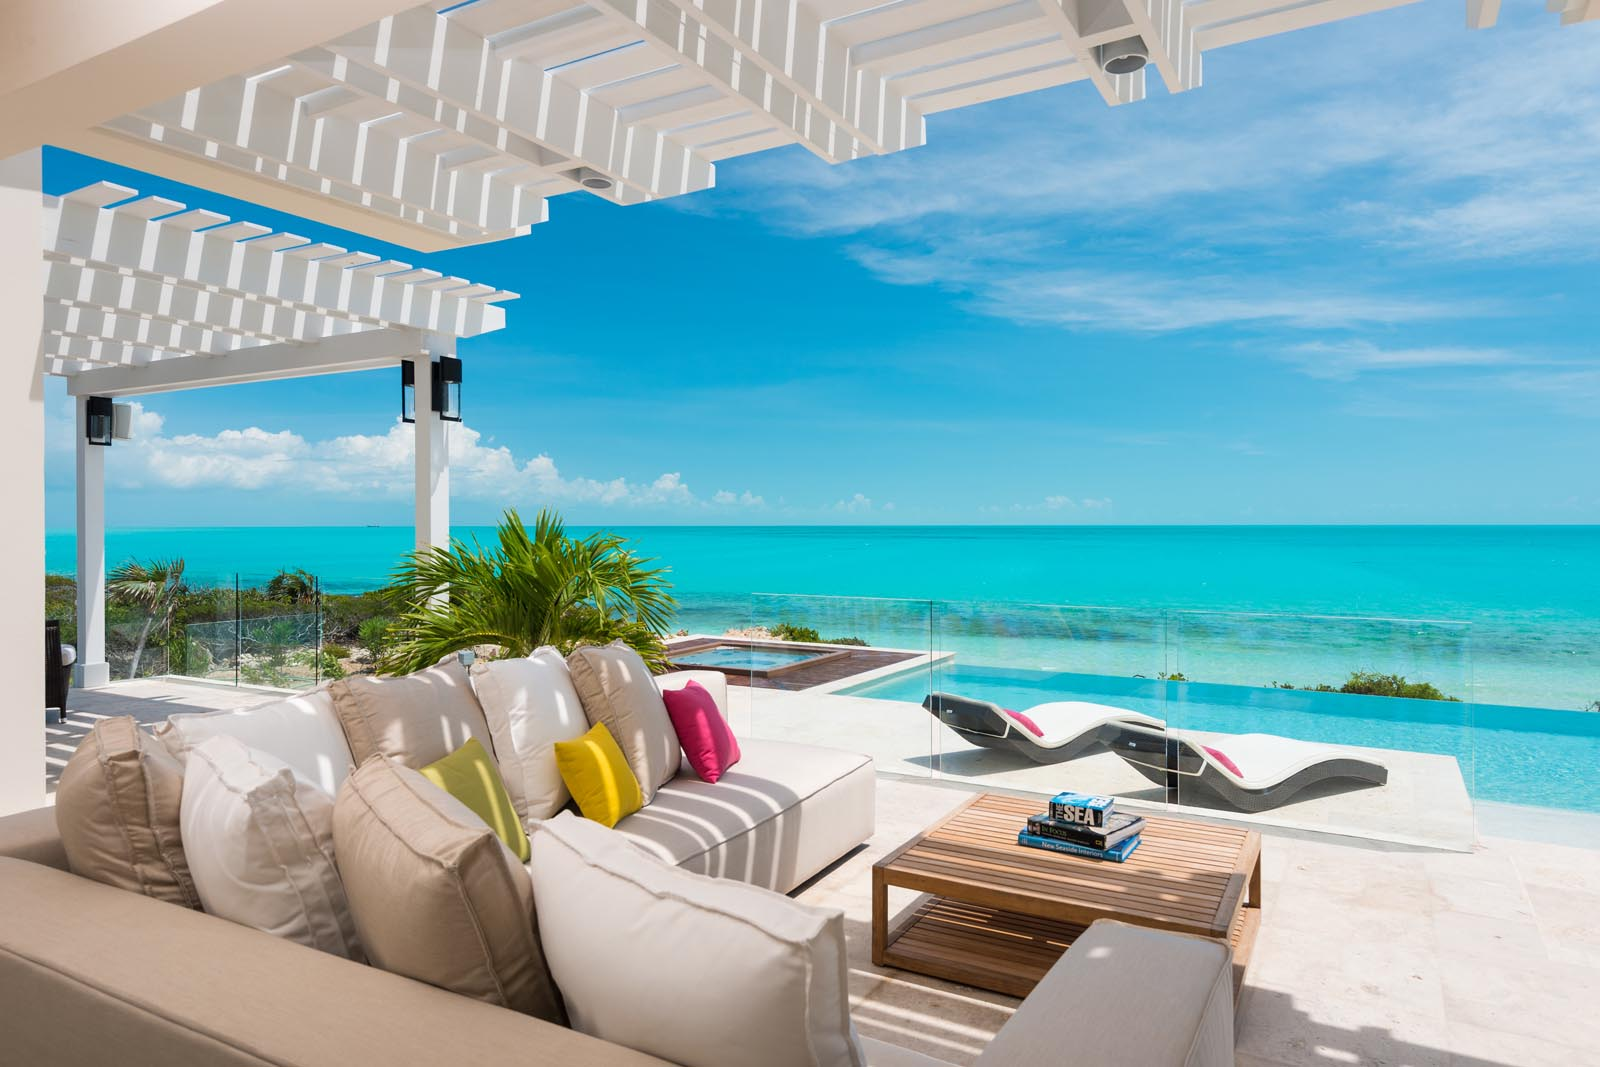 Comfortable Contemporary Furnishings For Outdoor Caribbean Living At This Turks And Caicos Vacation Villa Al